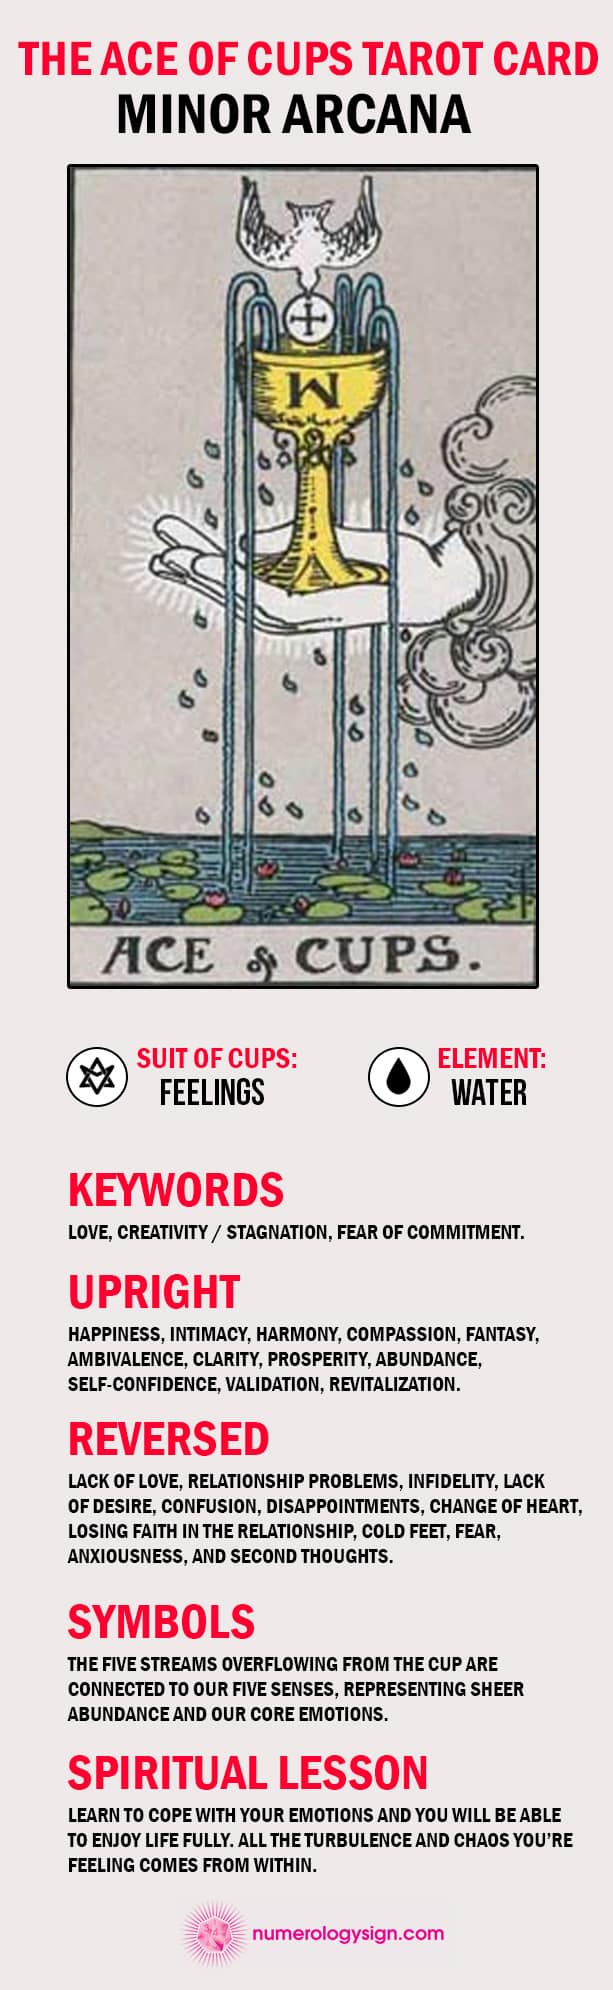 The Ace of Cups Tarot Card Meaning Upright and Reversed